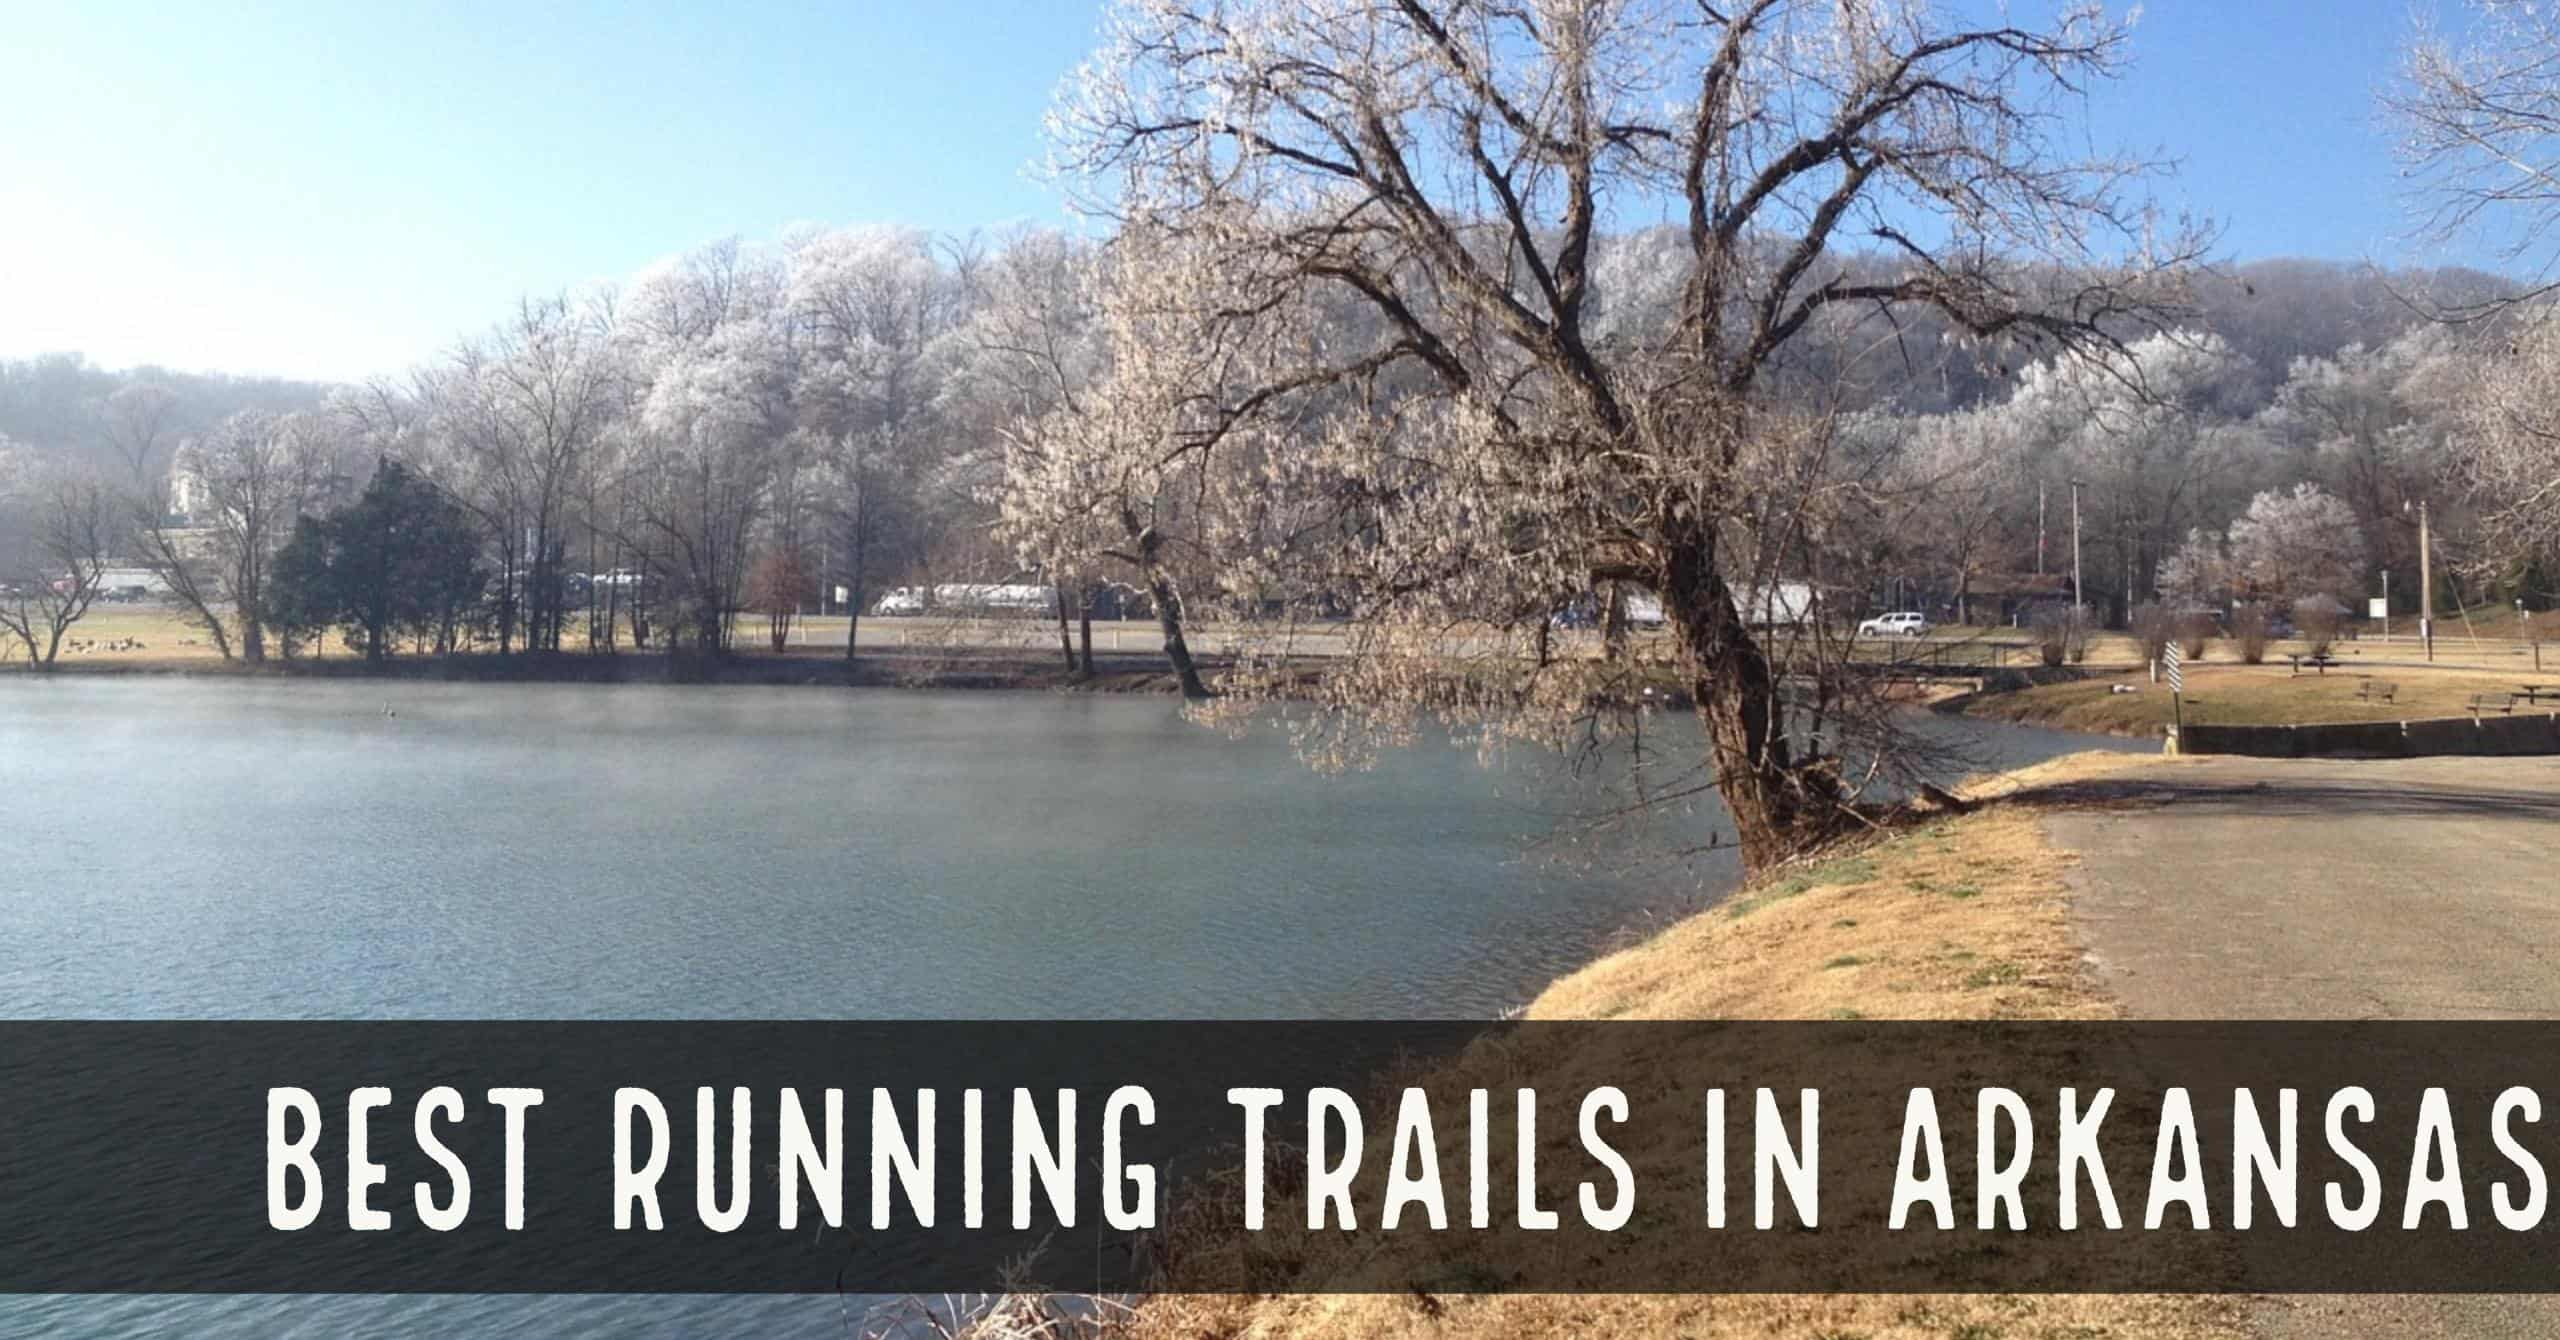 The 10 Best Running Trails in Arkansas - The most scenic in the Natural State